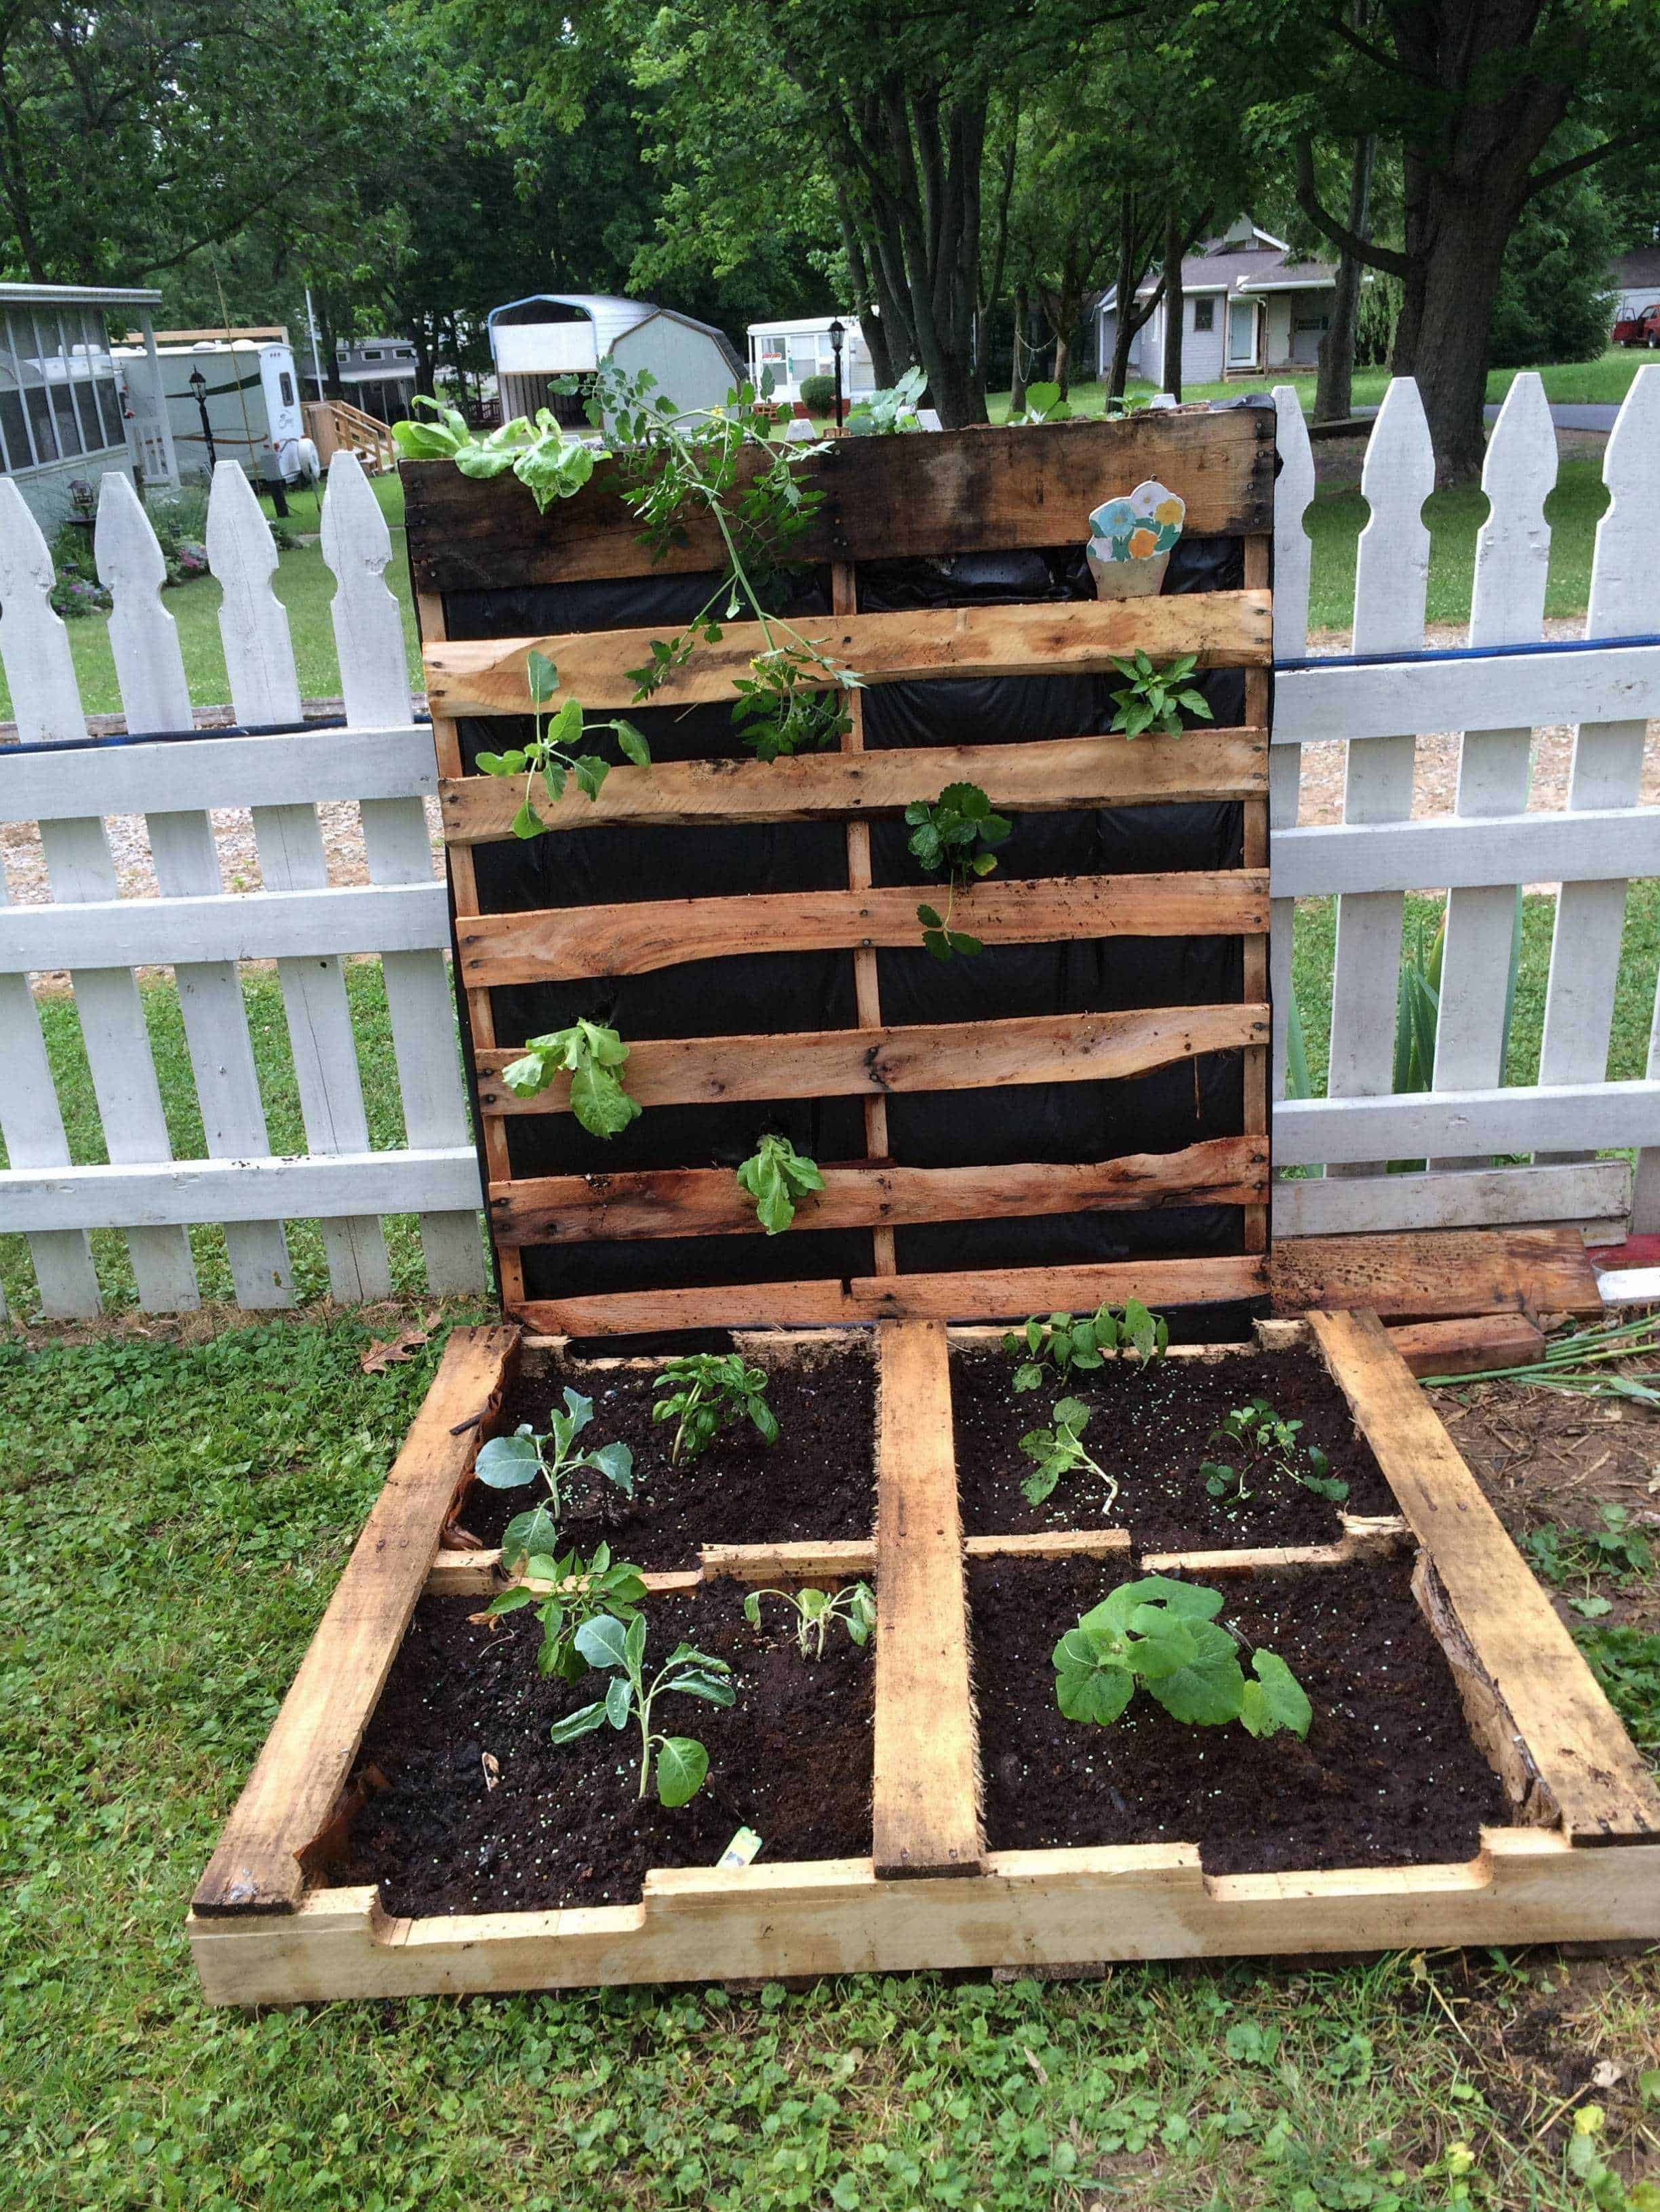 How To Make Your First Pallet Garden In 2020 Pallet Projects